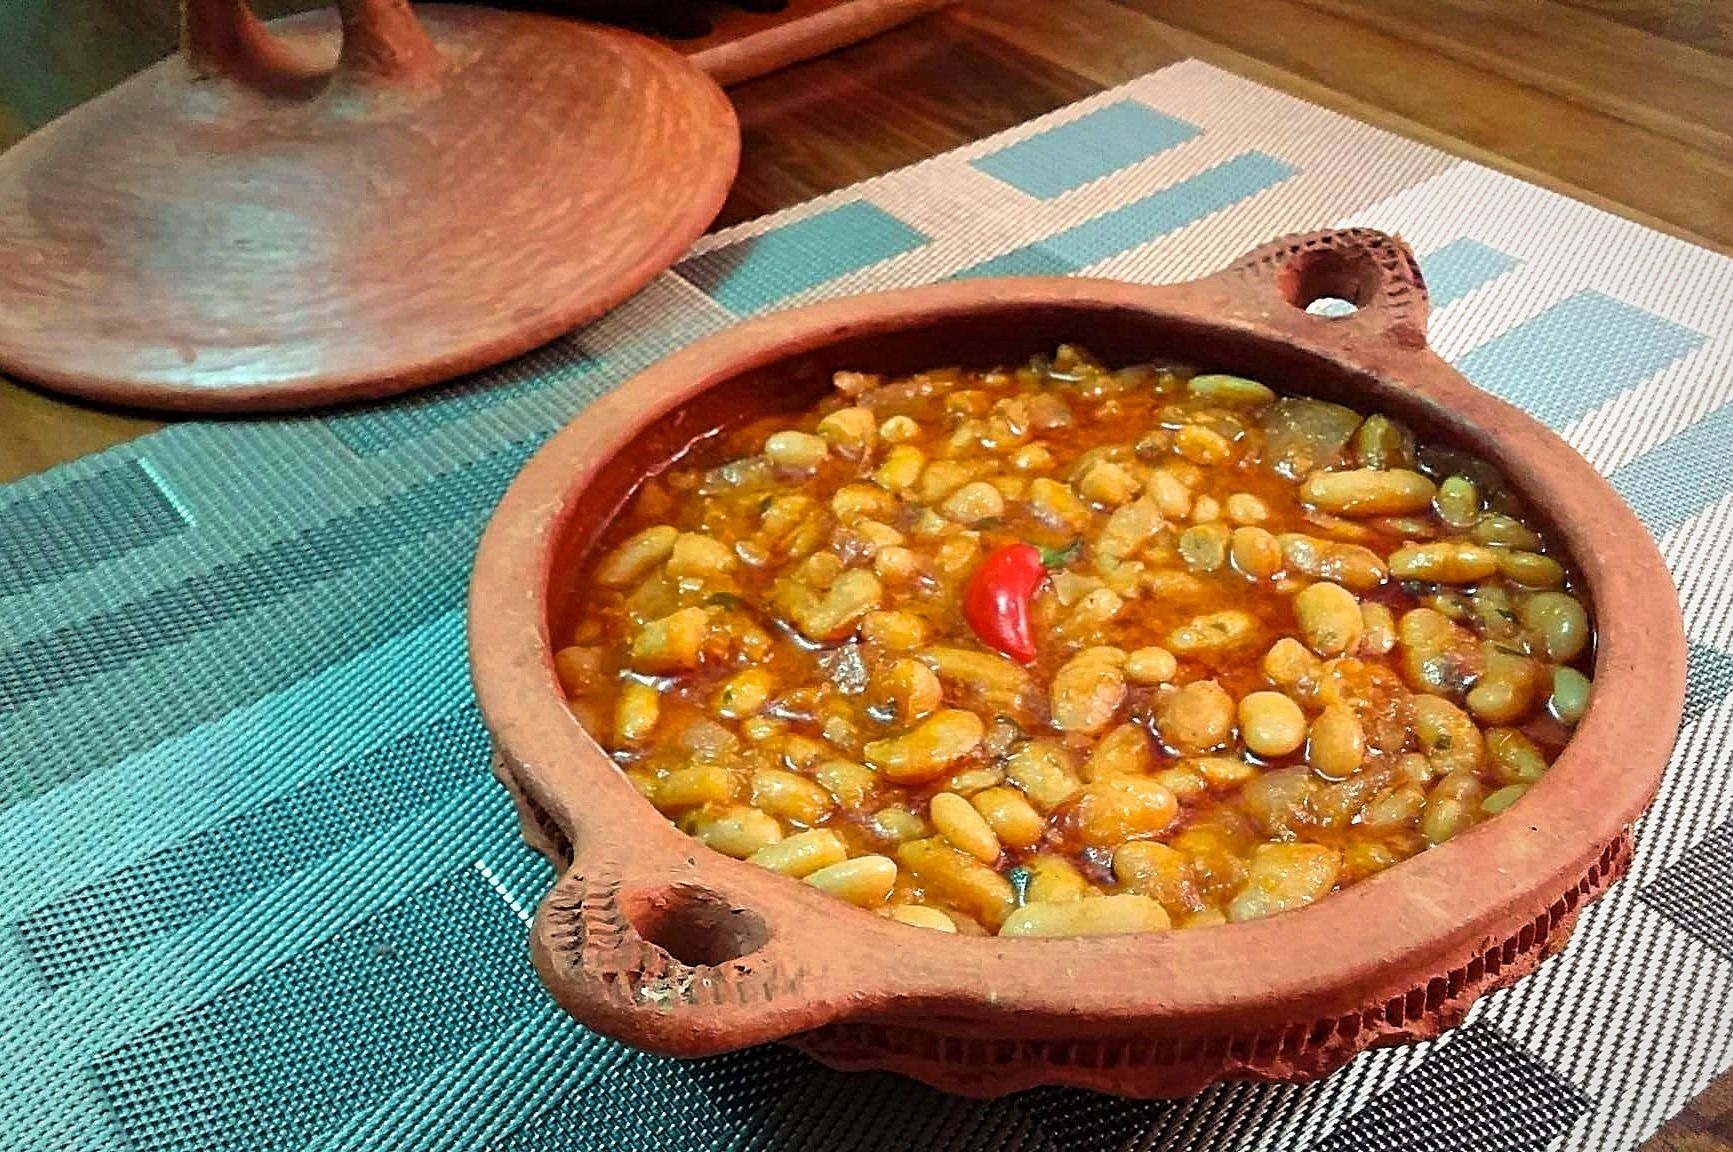 A shallow clay dish with handles holds Moroccan loubia, a dish of white beans stewed in zesty tomato sauce. A small red chili pepper is centered in the dish.